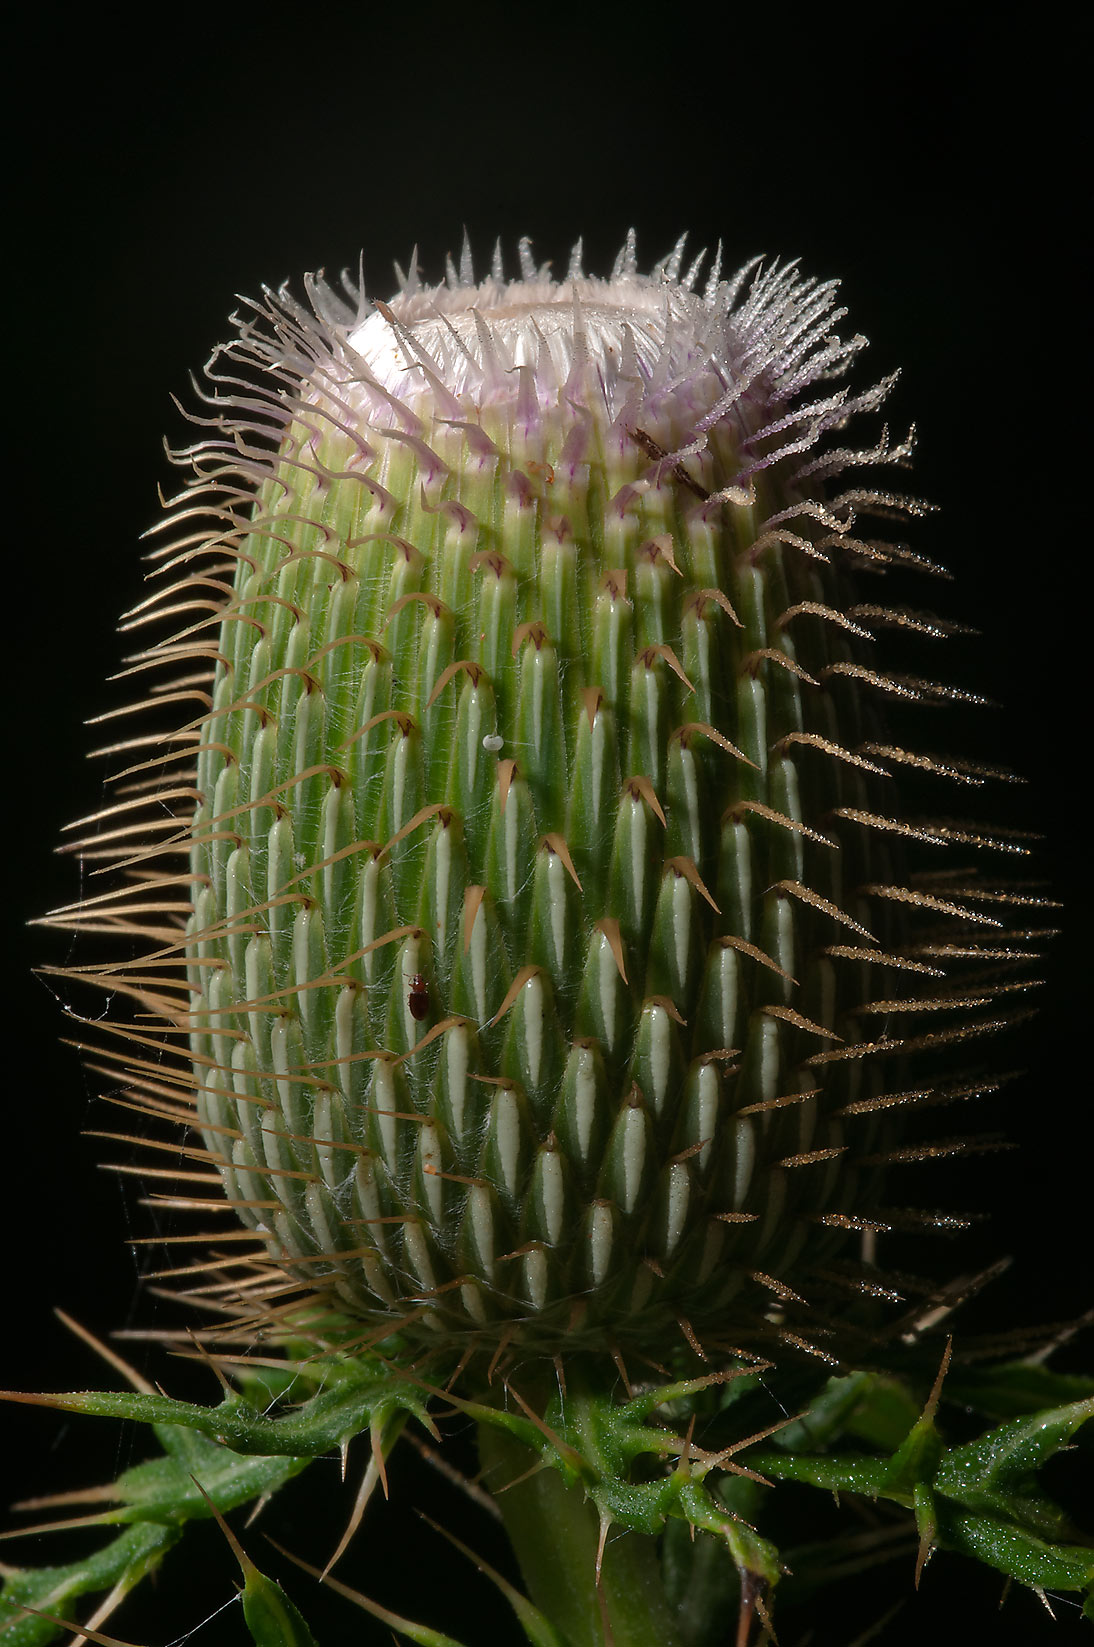 Spiny flower bud of a thistle (Cirsium...Creek Park. College Station, Texas